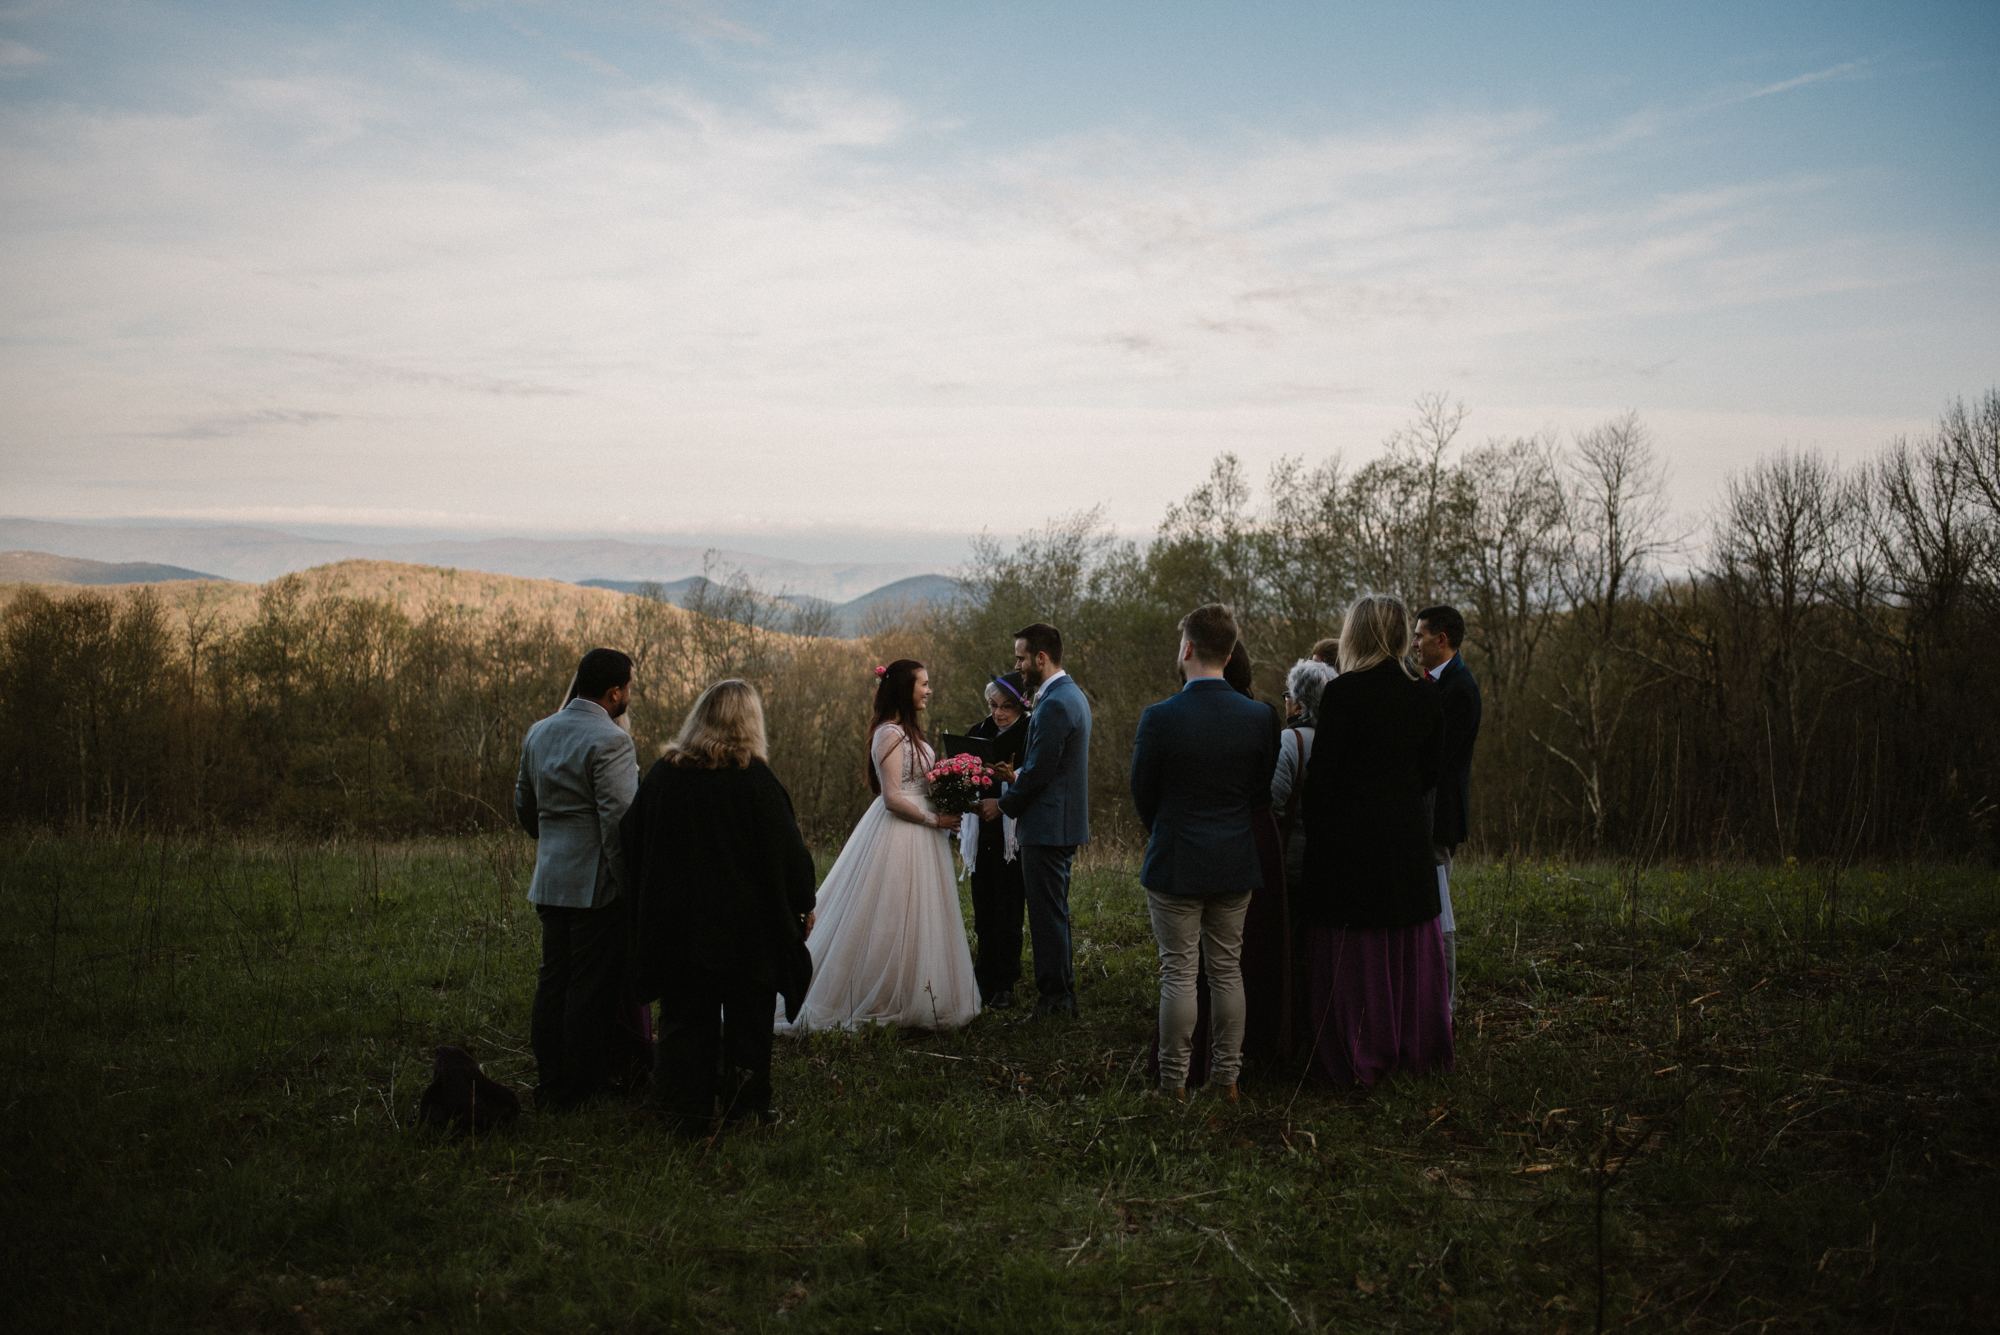 Paula and Andrew - Small Adventurous Wedding in Shenandoah National Park - Blue Ridge Mountain Wedding - White Sails Creative - Mountain Elopement_17.jpg